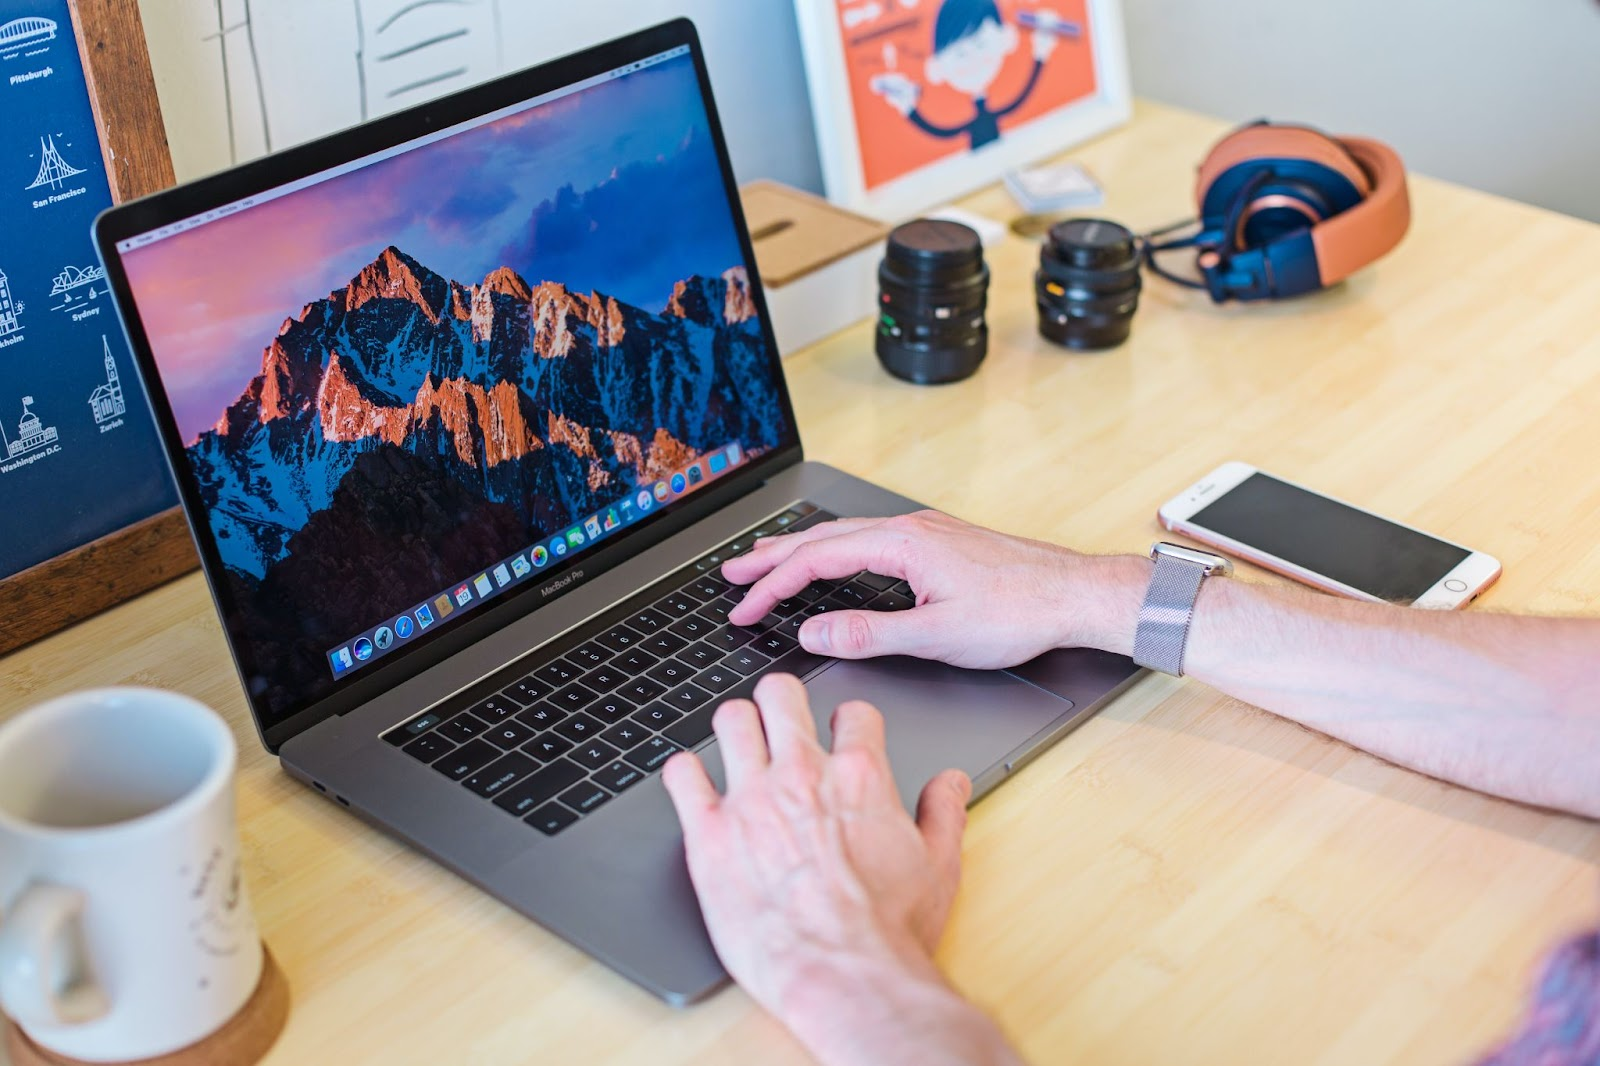 What Are Some Considerations Before Selling Your Mac?